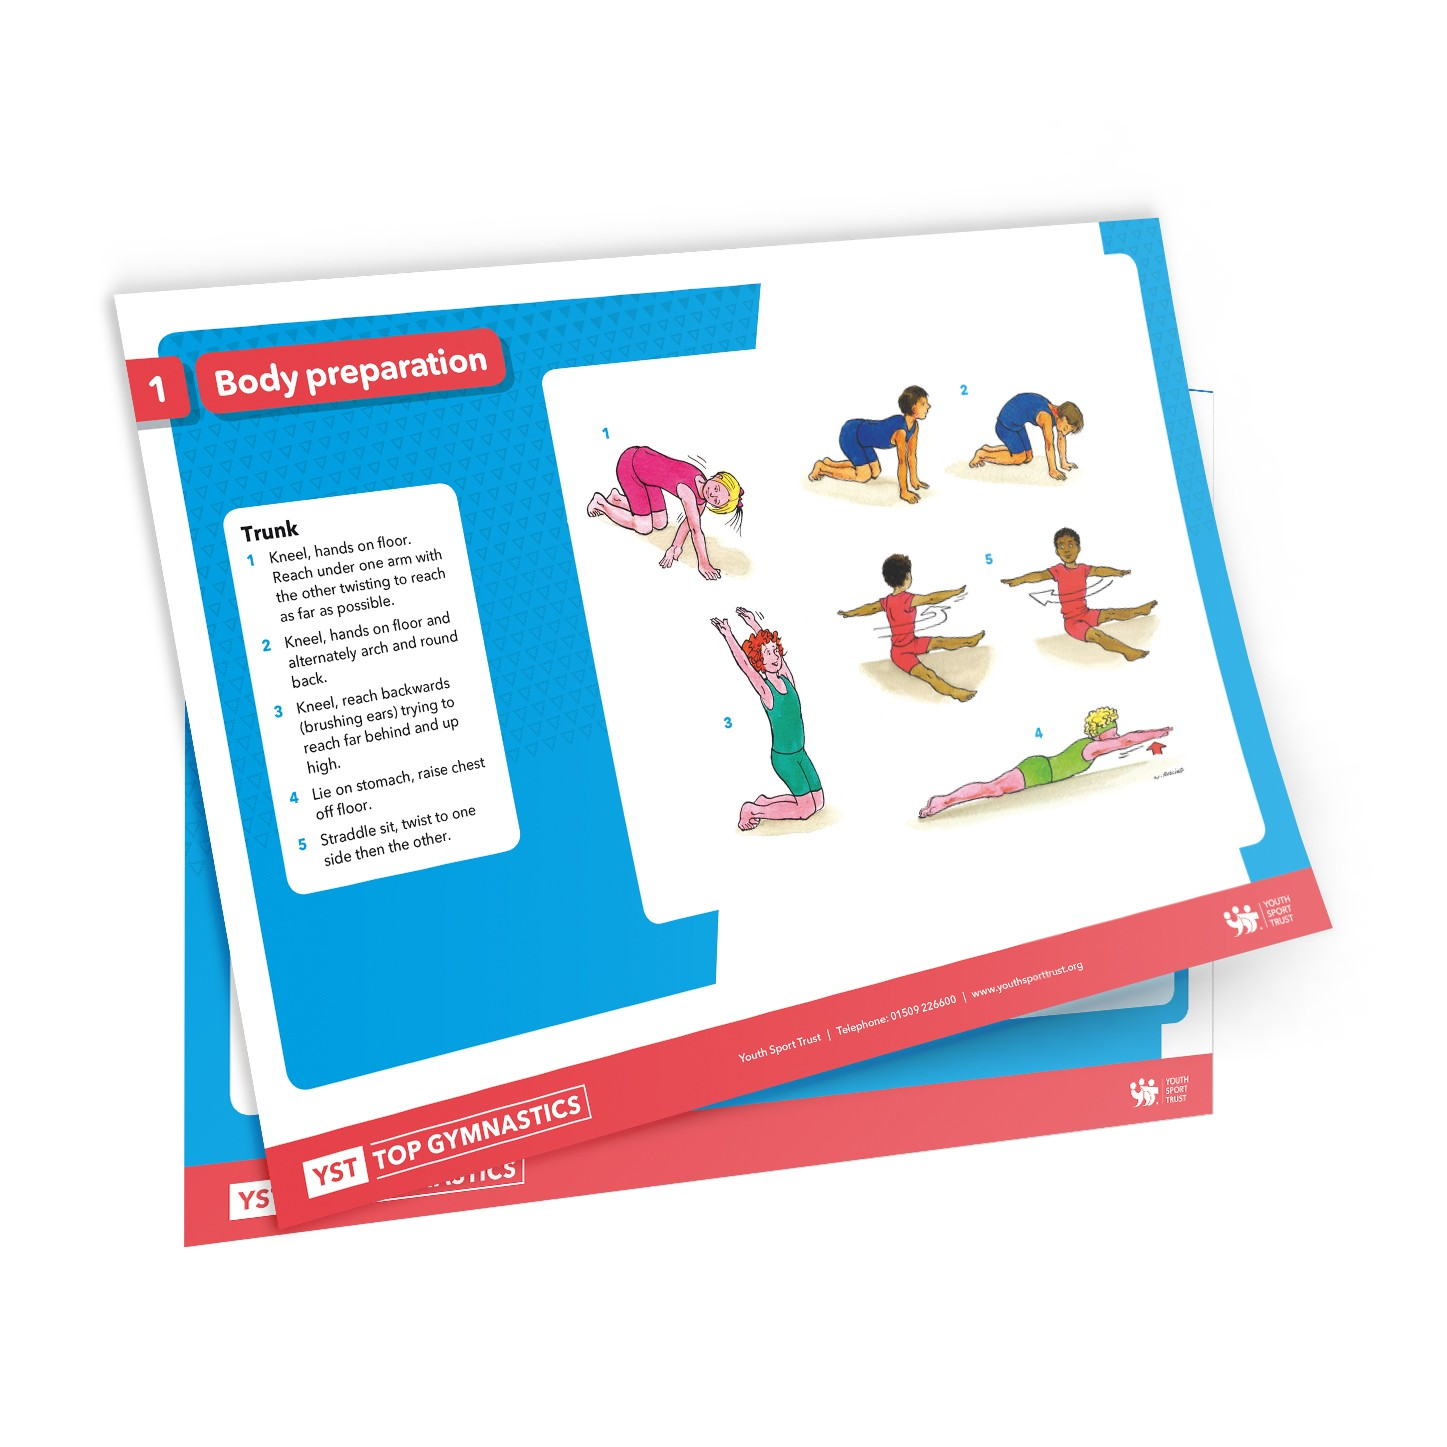 Top resource cards subjects. Pe clipart youth sport